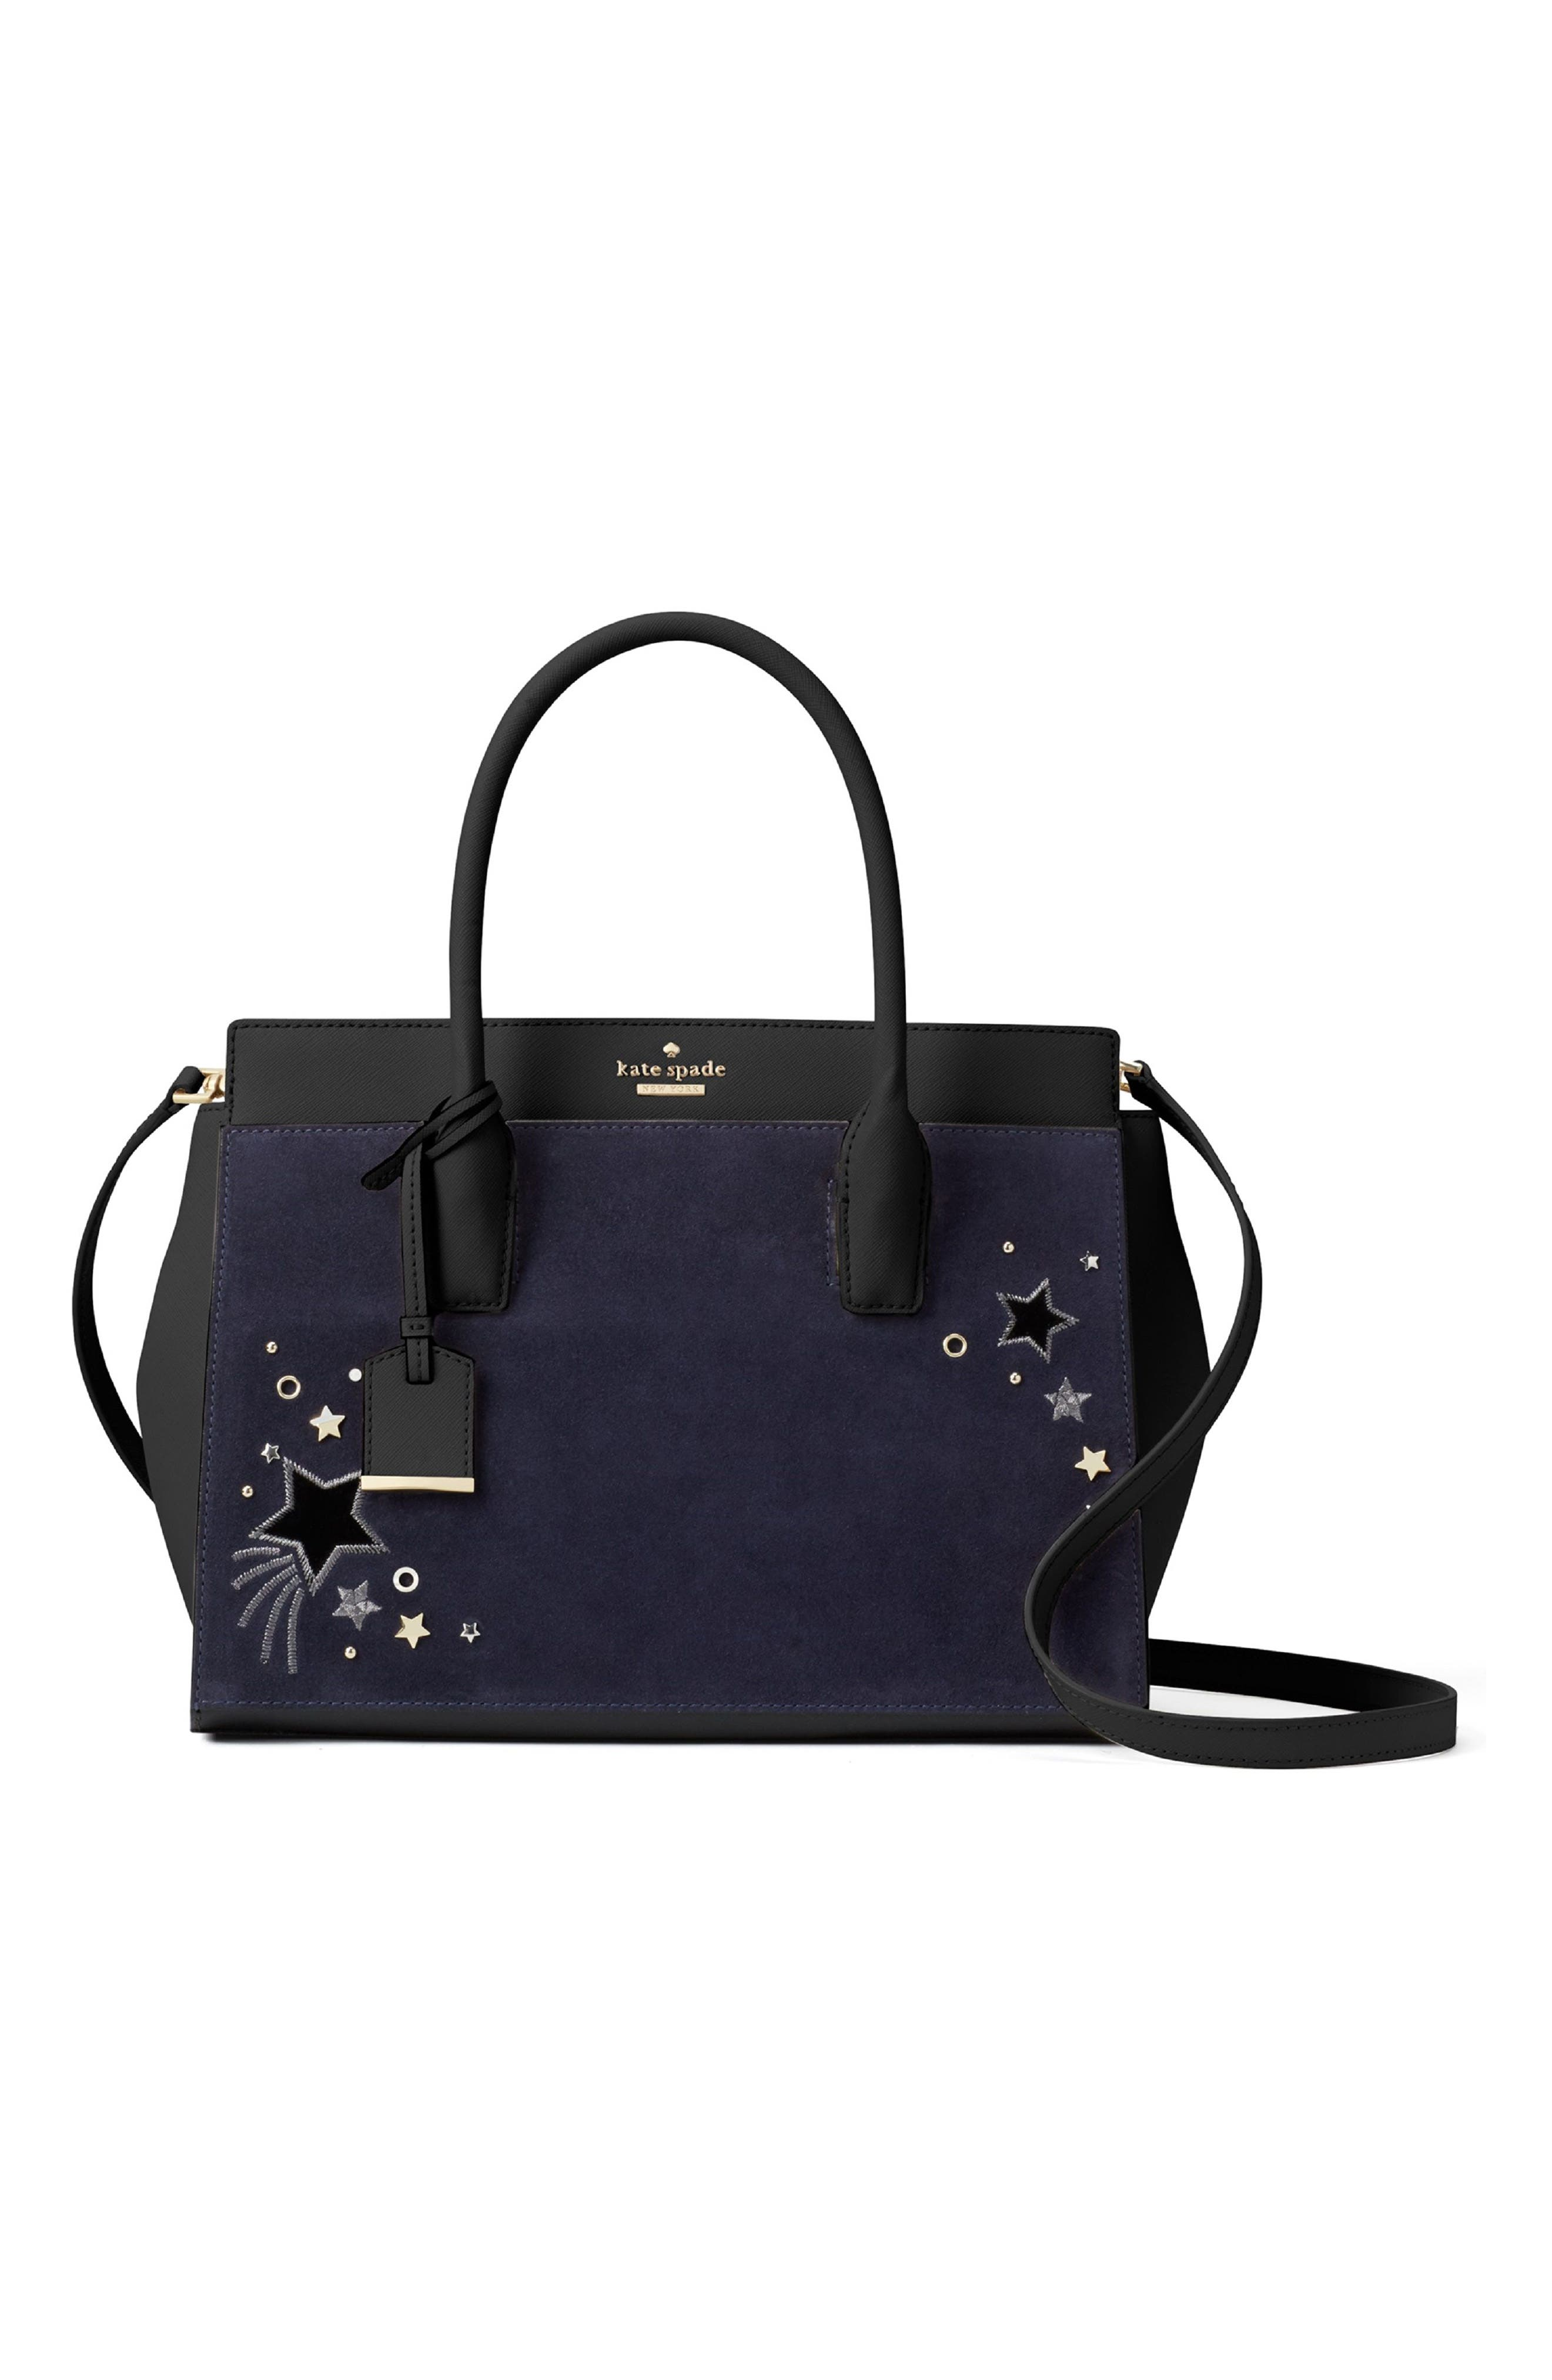 make it mine star embellished leather snap-on accent flap,                             Alternate thumbnail 4, color,                             400